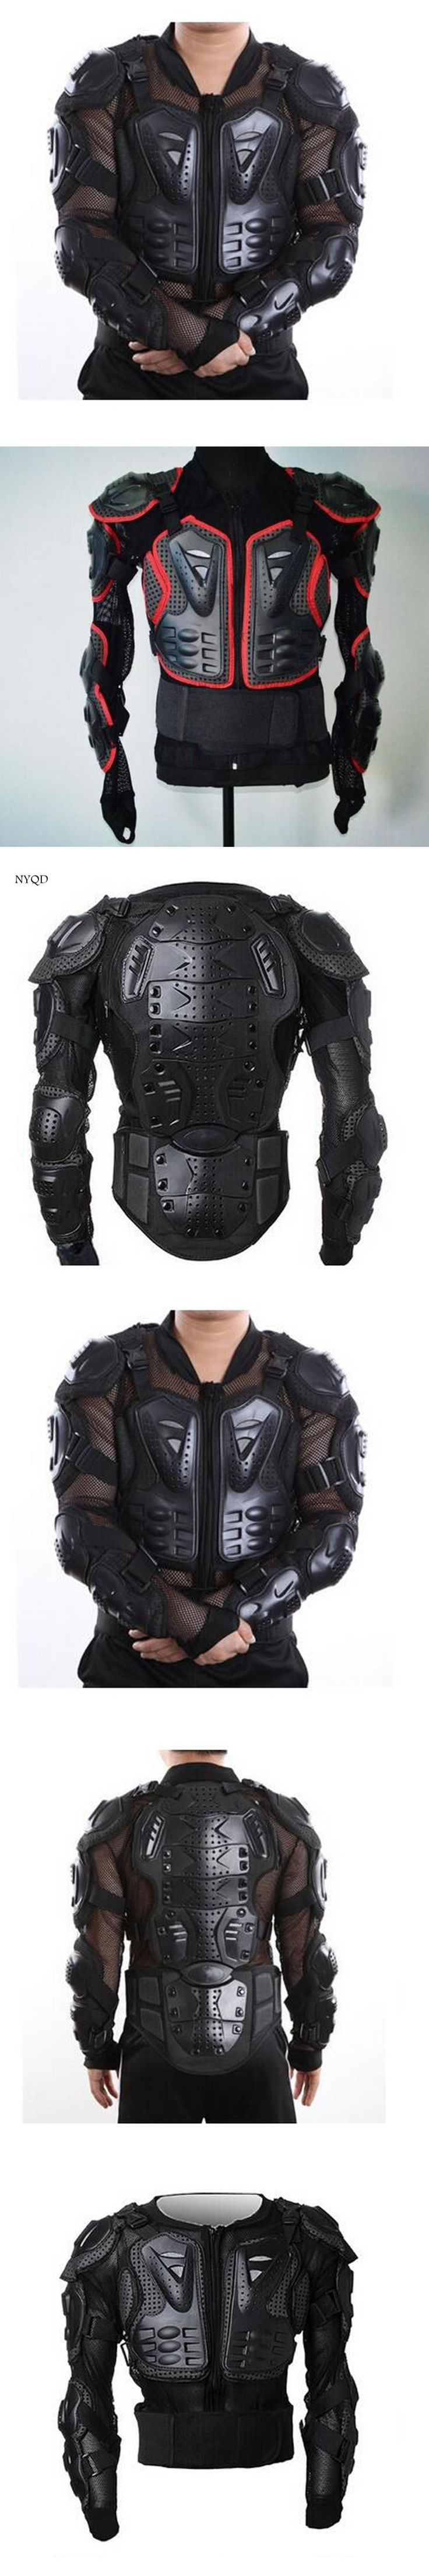 2017 NEW Professional motorcycles armor protection motocross clothing protection moto cross back armor protector